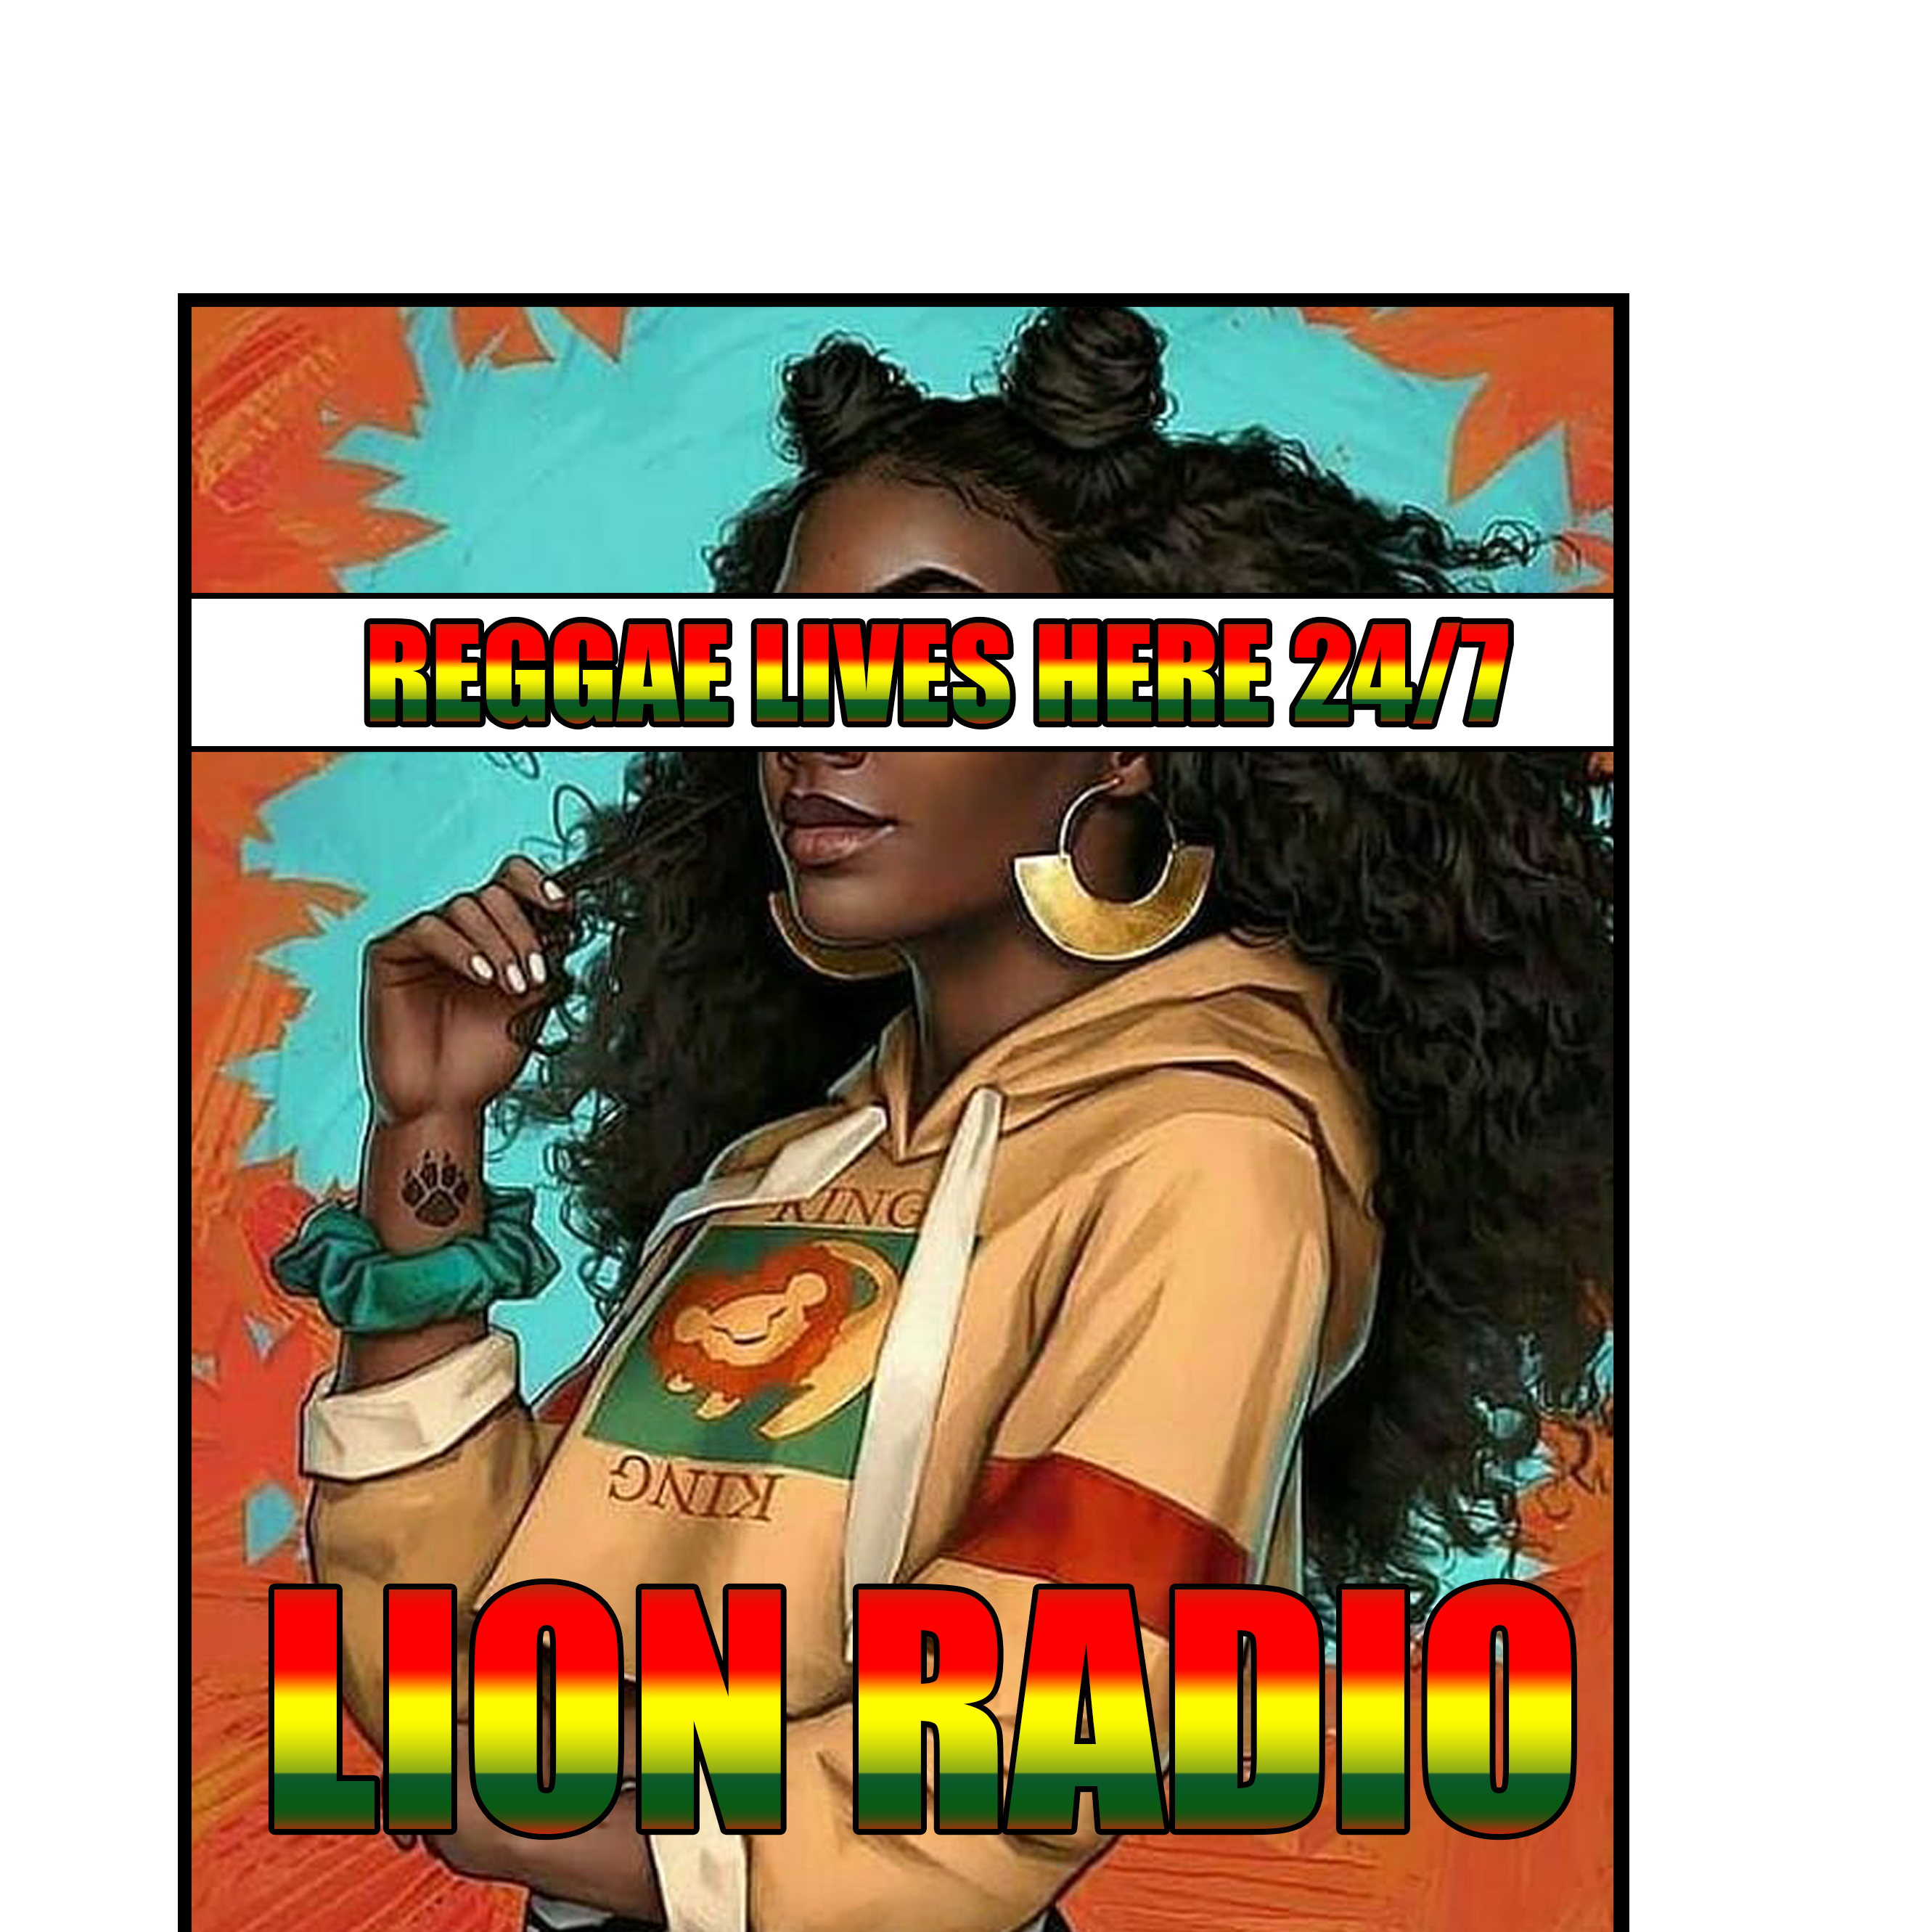 Lion Radio Reggae